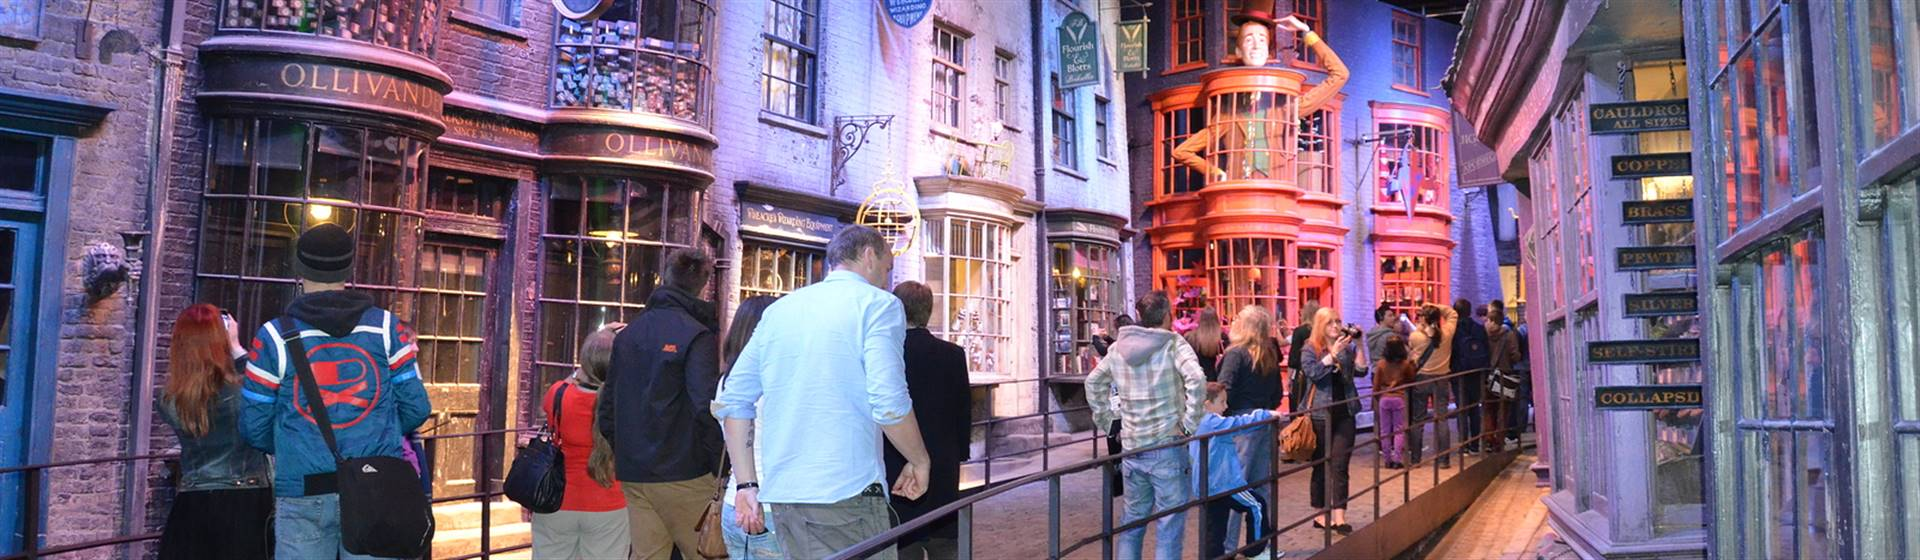 Harry Potter Warner Brother Studio